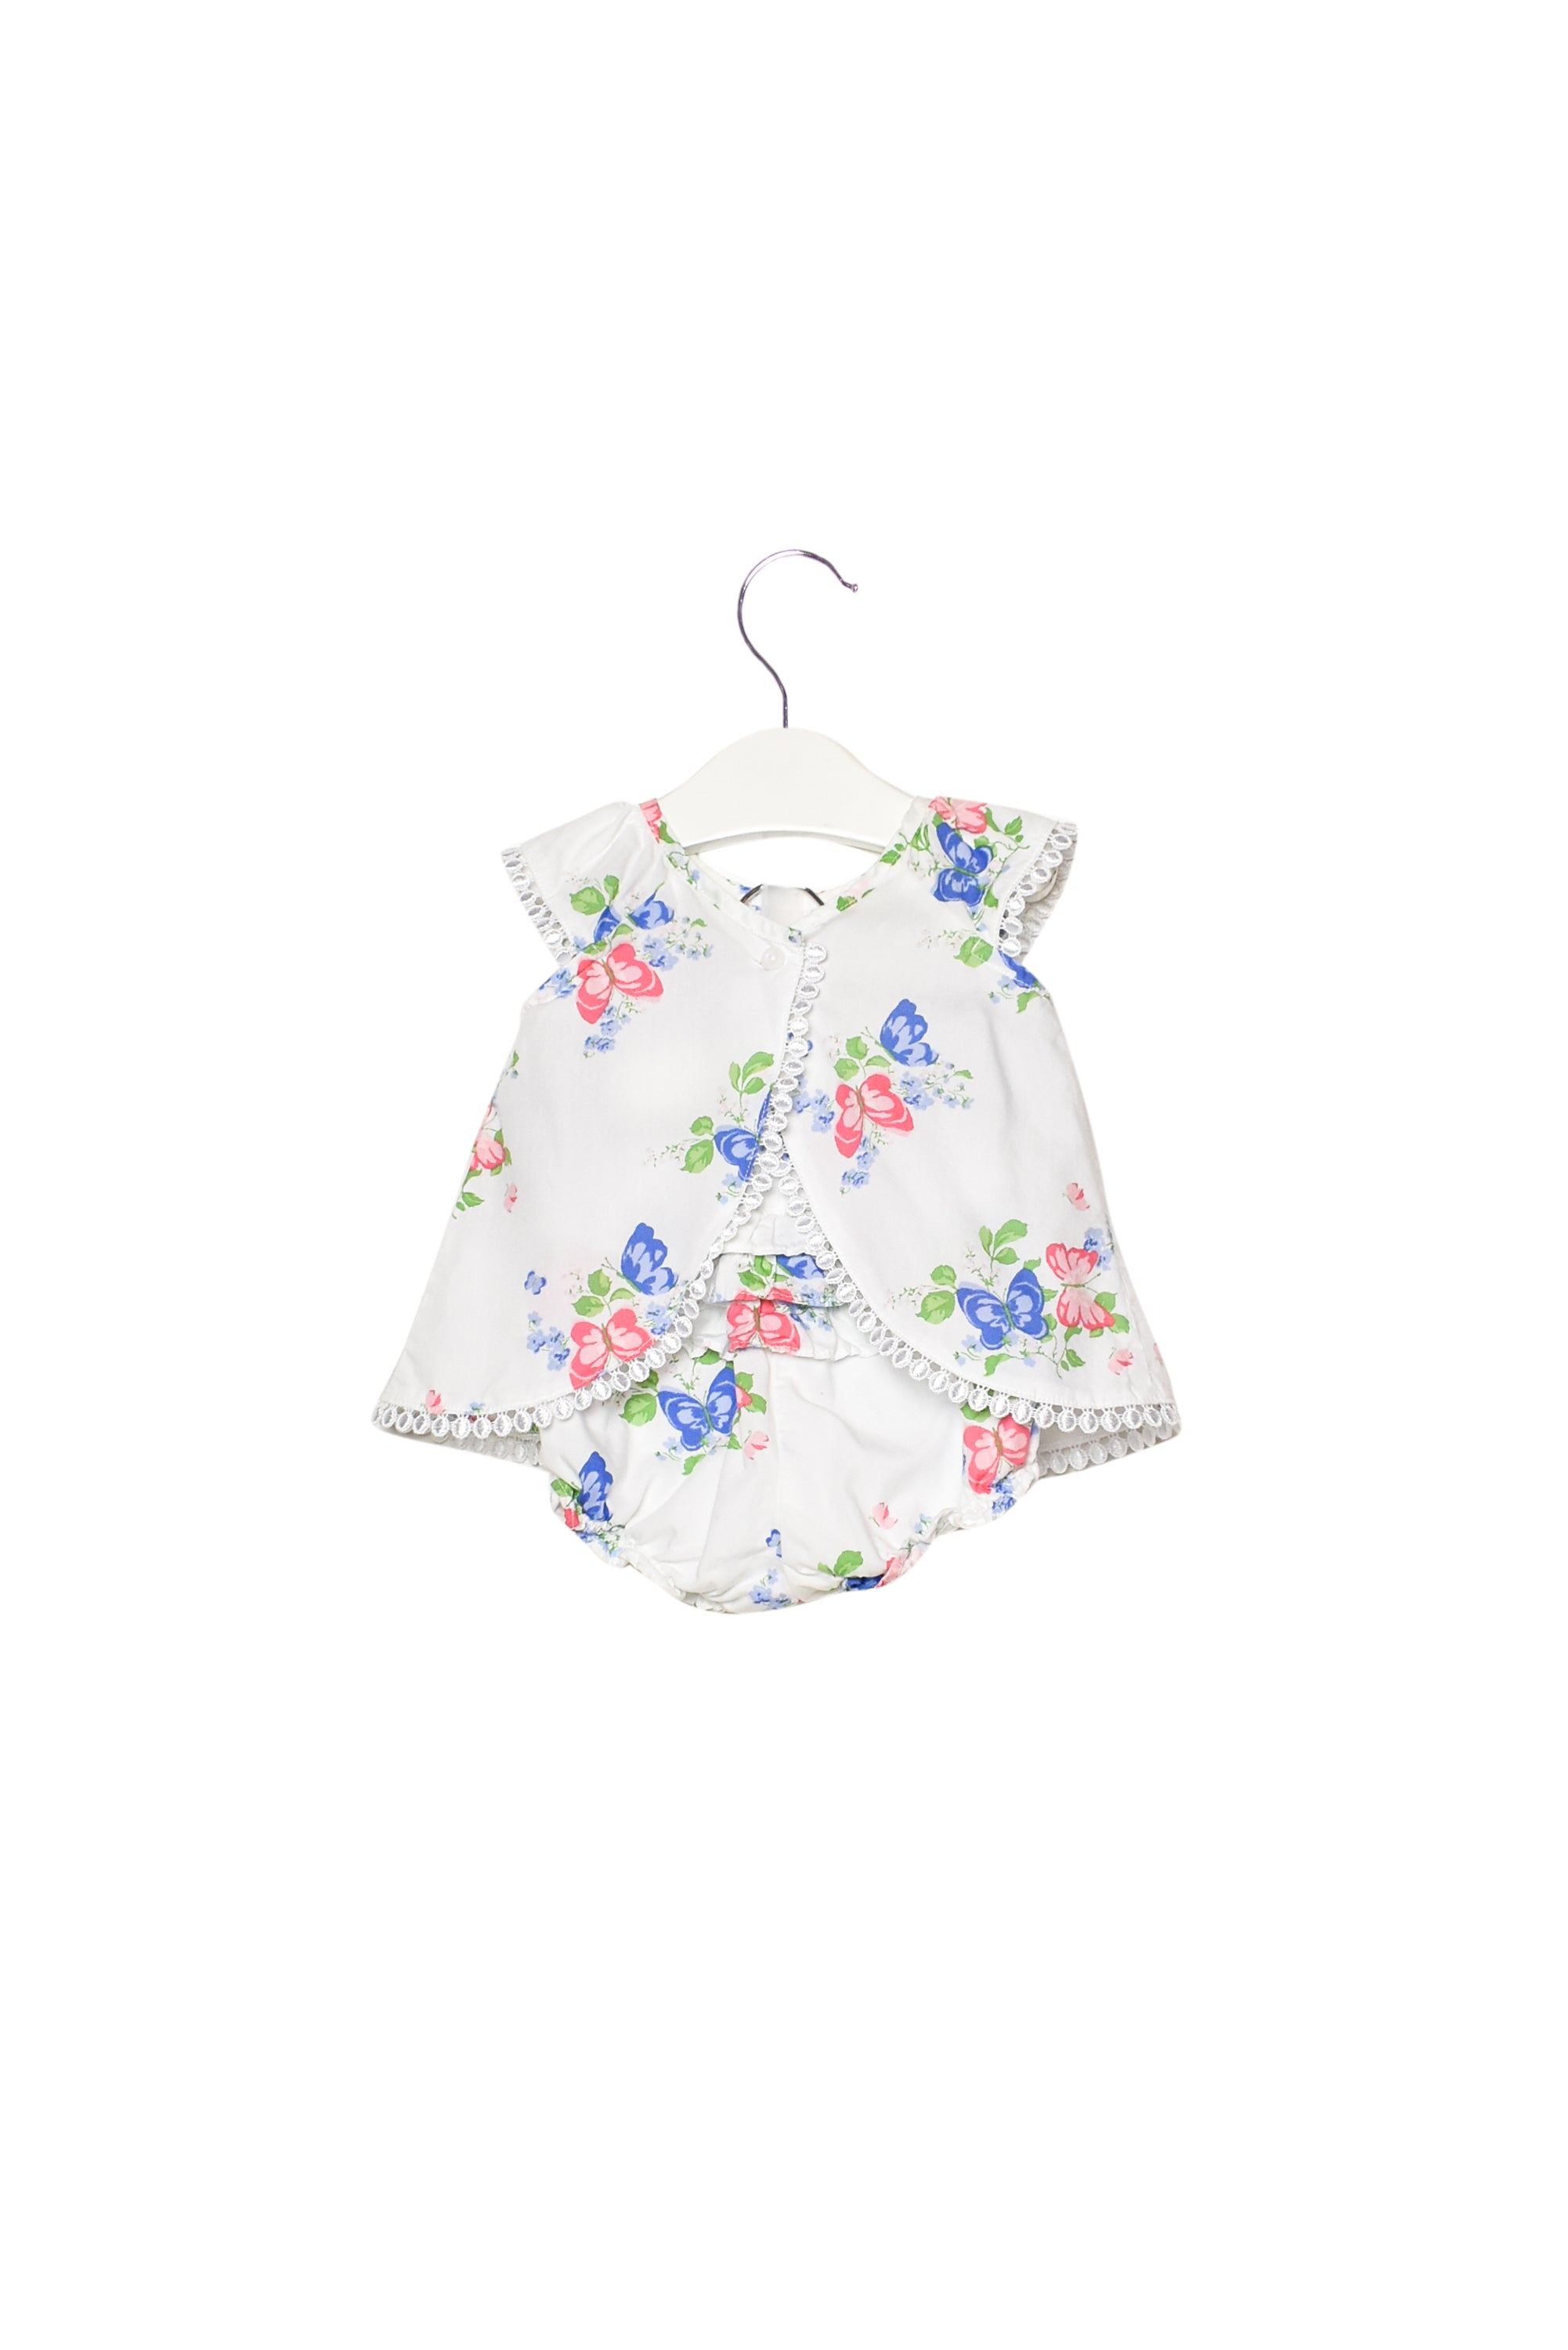 10012026 Janie & Jack Baby ~ Top and Bloomer 3-6M at Retykle